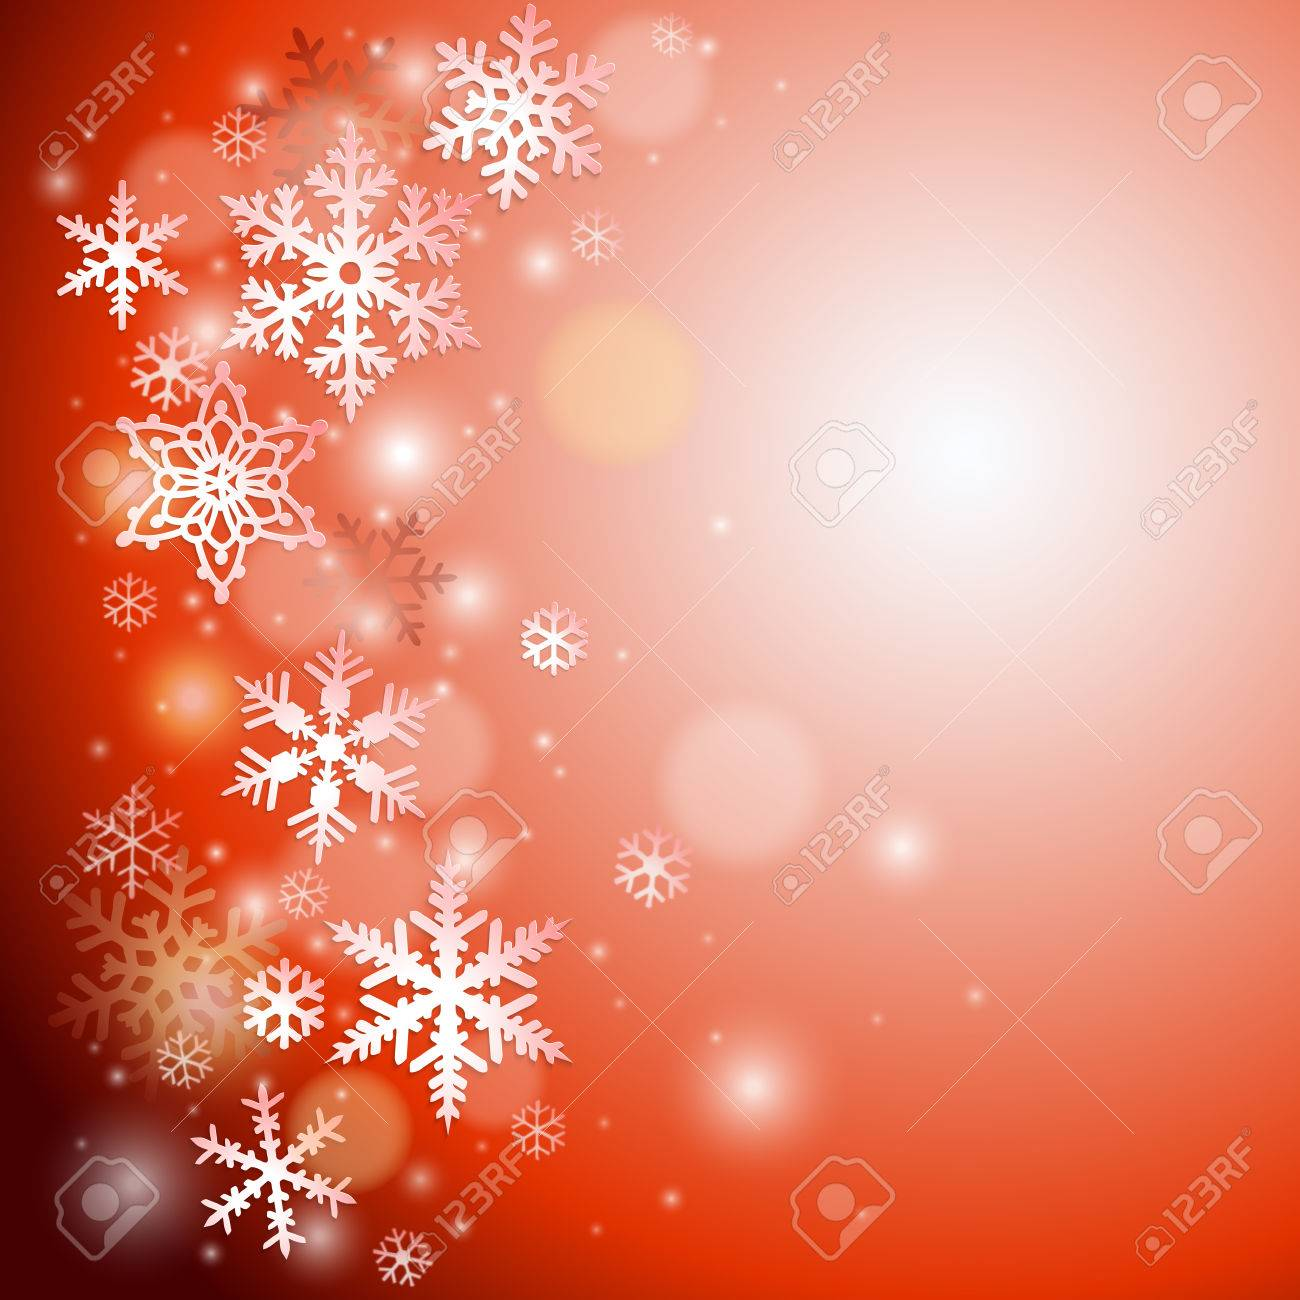 Christmas vector background with snowflakes - 48418324